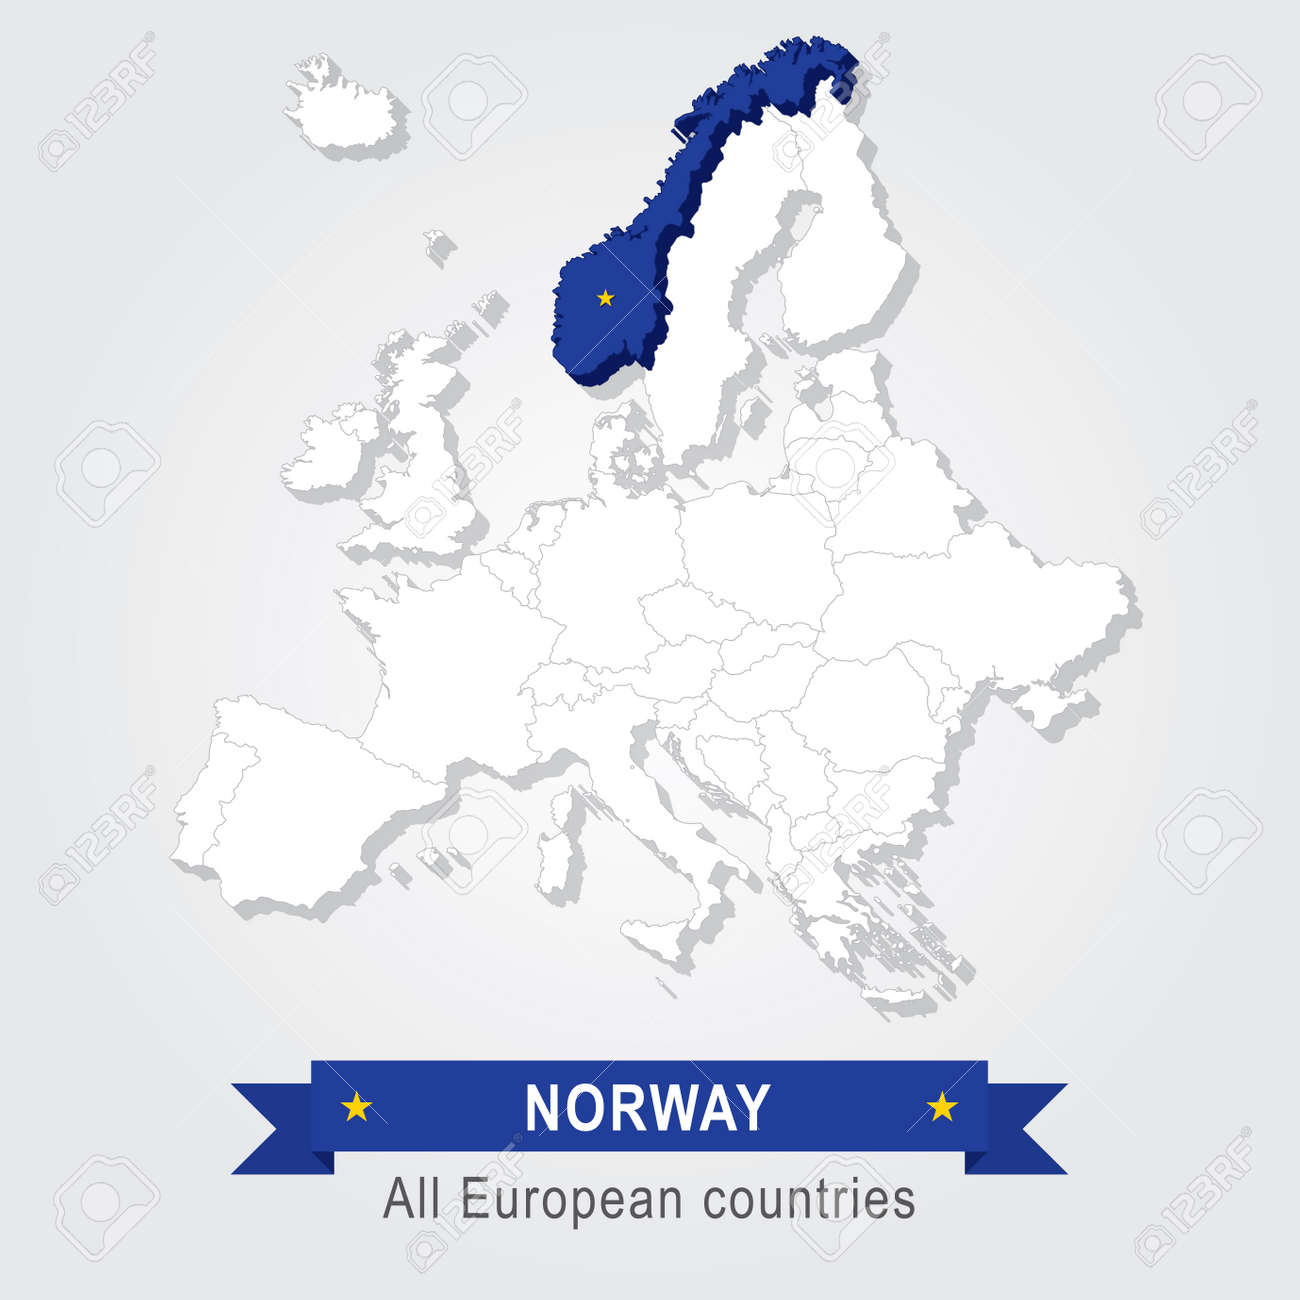 Norway On Europe Map.Norway Europe Administrative Map Royalty Free Cliparts Vectors